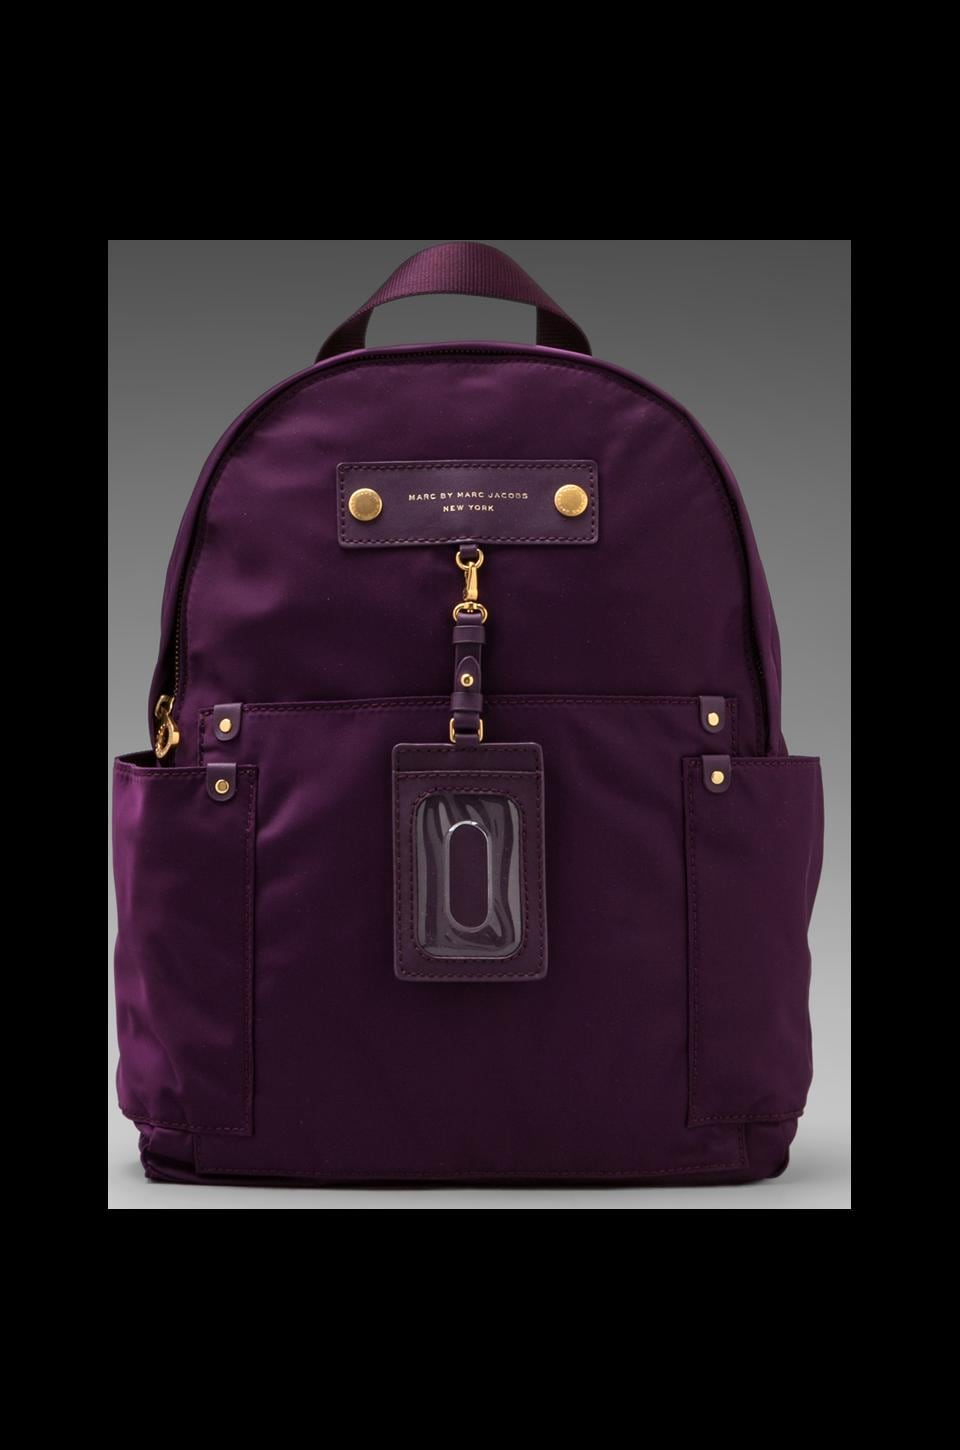 Marc by Marc Jacobs Preppy Nylon Backpack in Pansy Purple